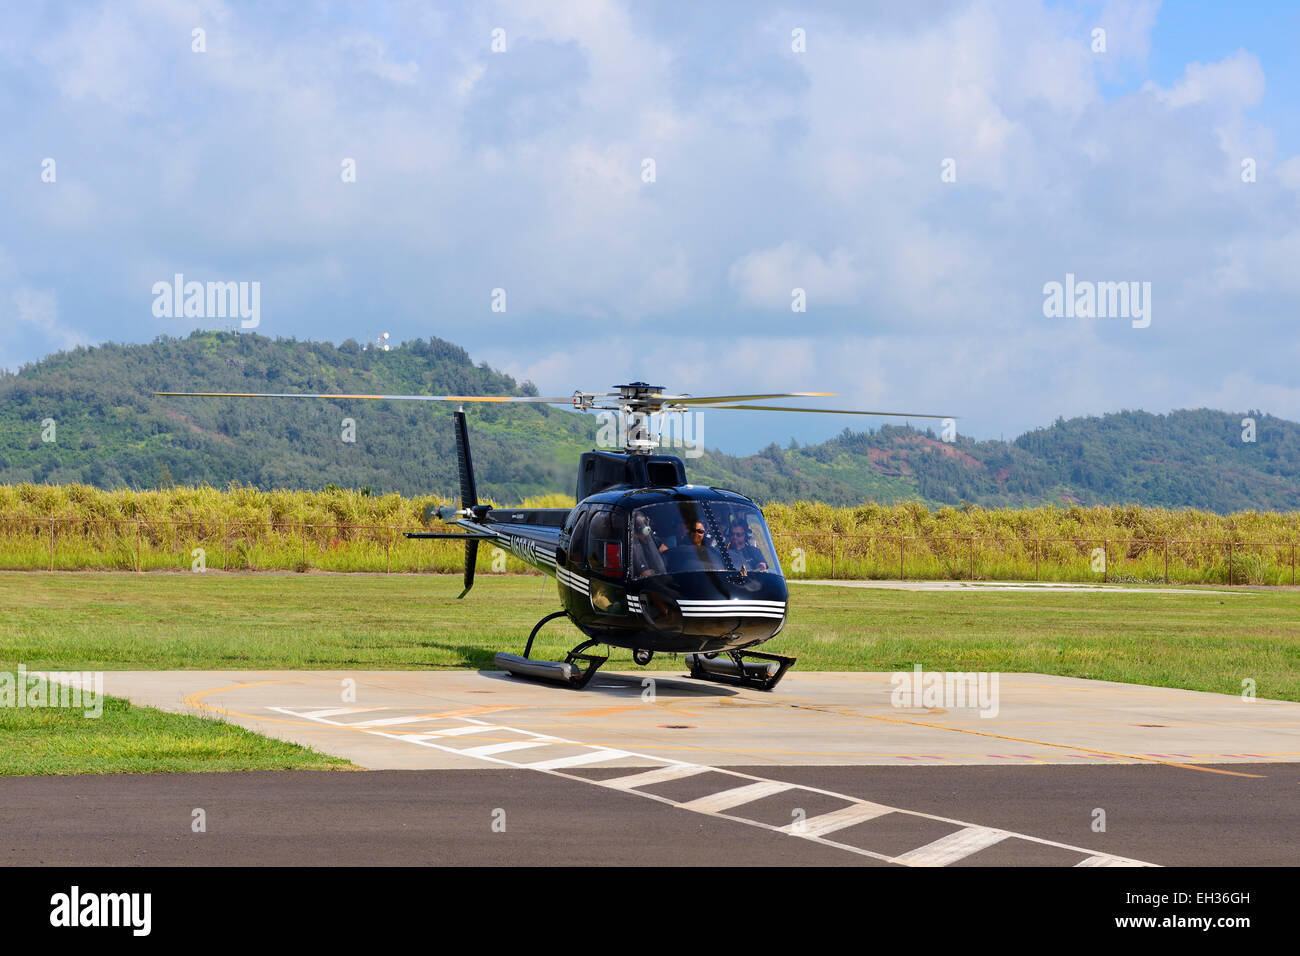 Aerospatiale AS350BA helicopter prepares for takeoff at Lihue International Airport, Lihue, Kauai, Hawaii, USA - Stock Image